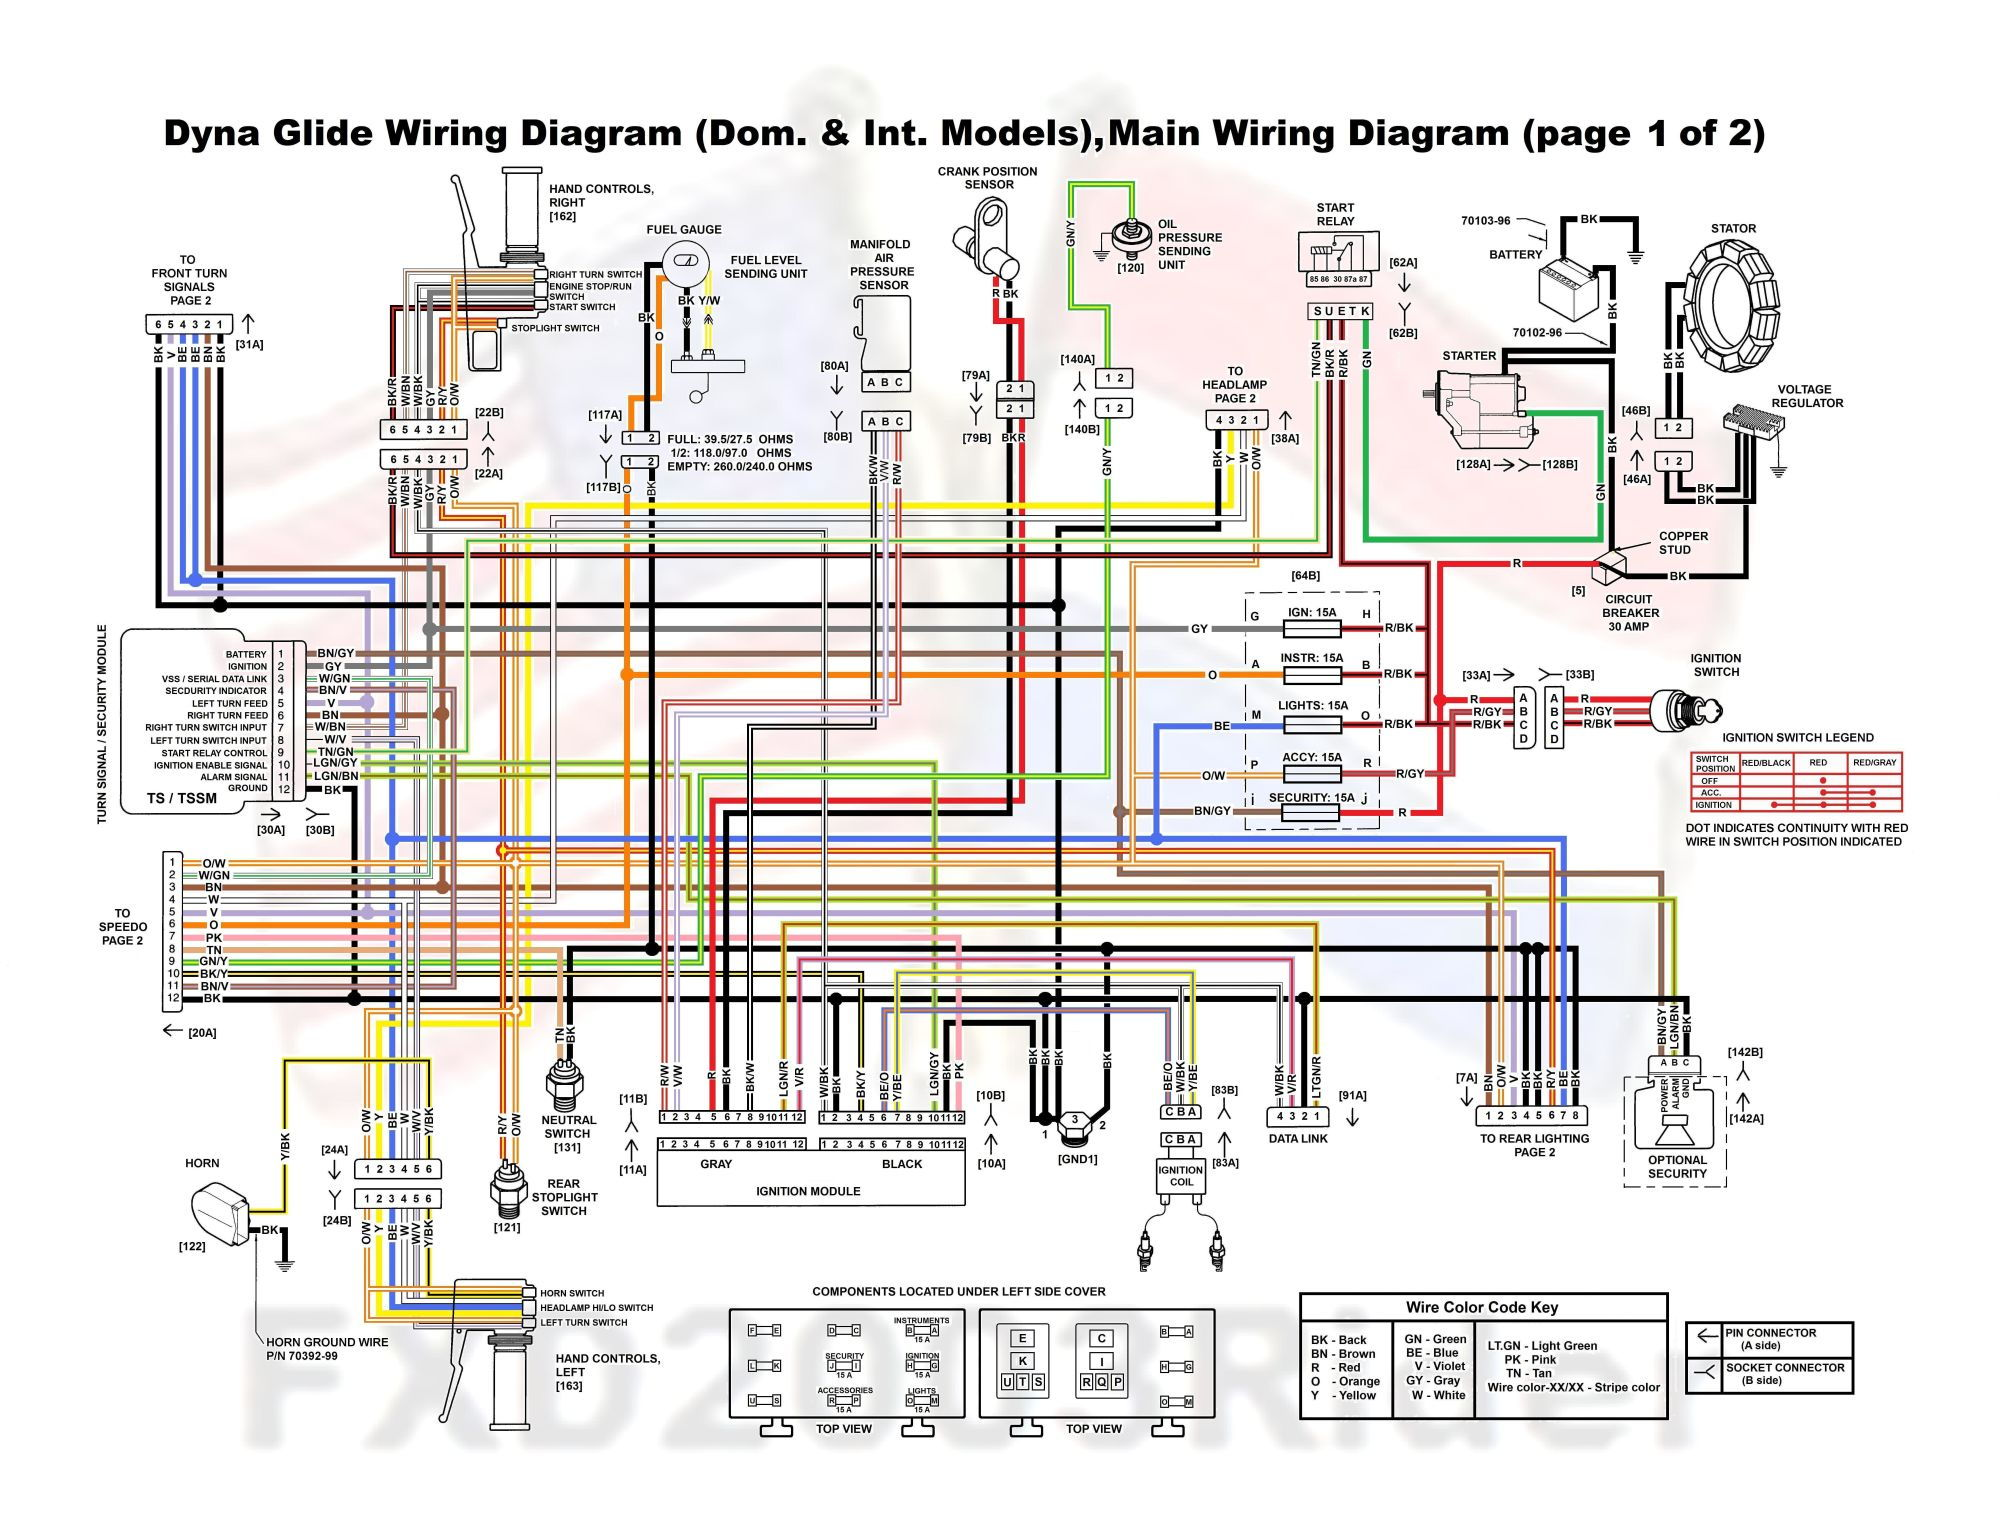 Flhtcu Wiring Diagram | Wiring Diagram on